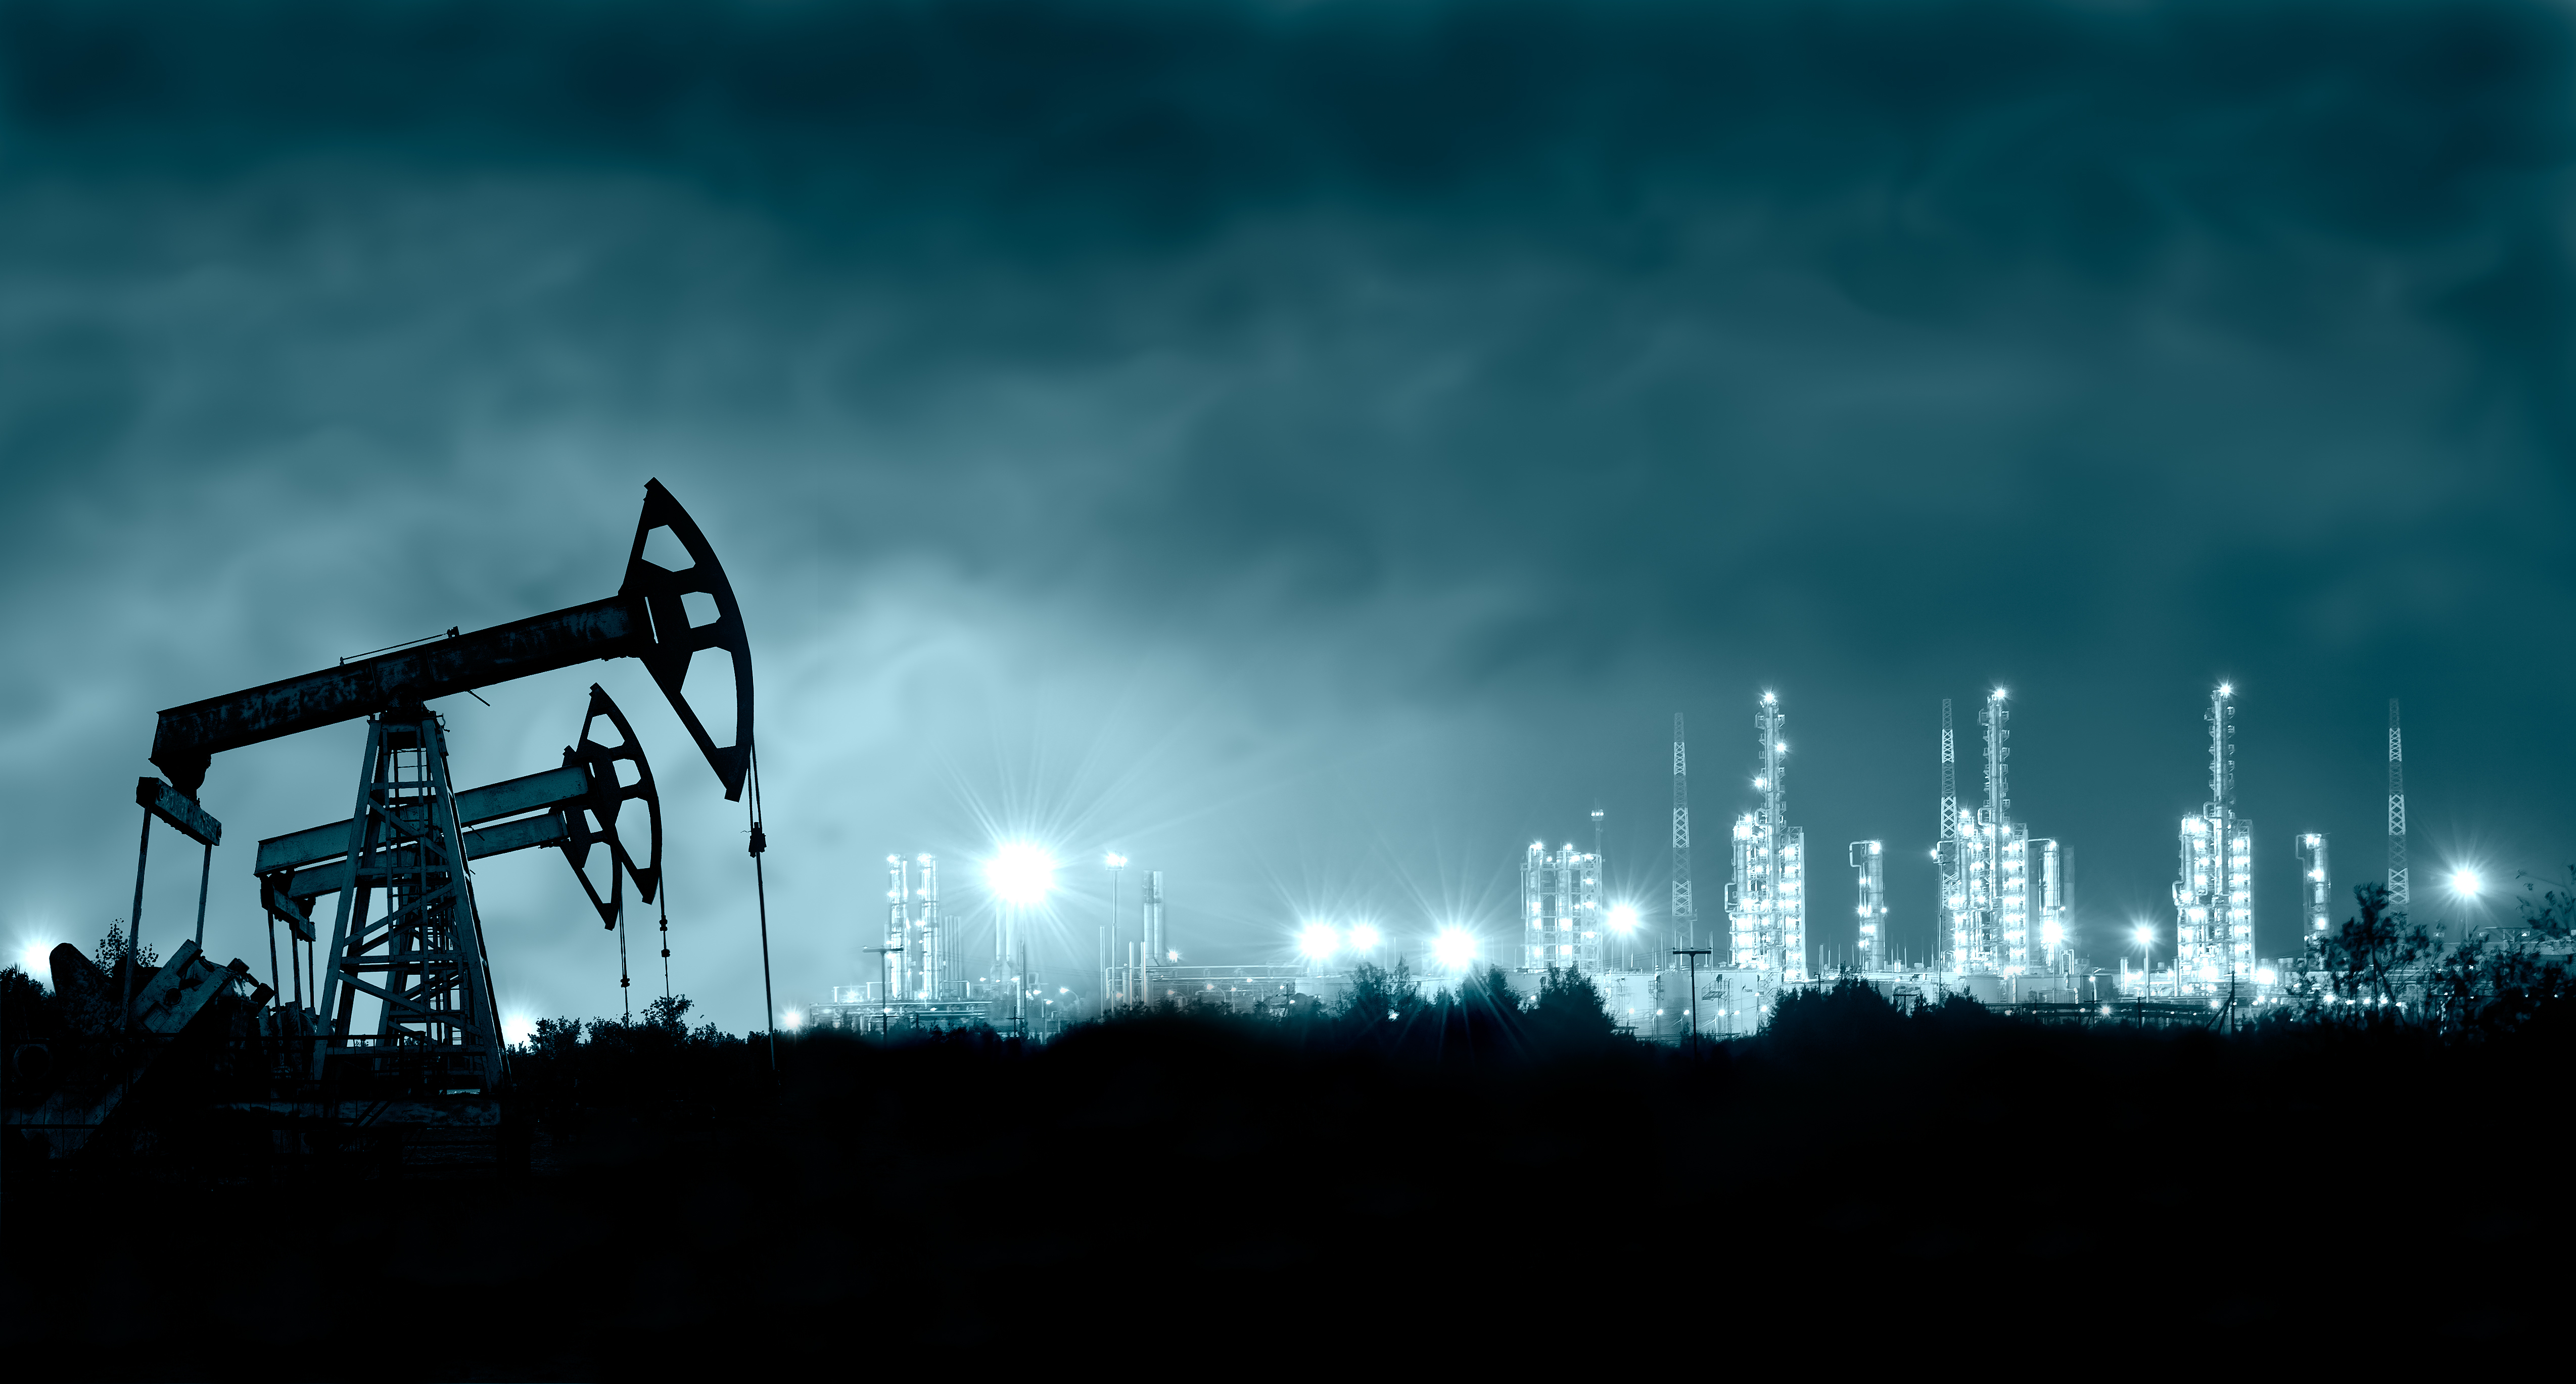 loop-audio-video-security-oil-and-gas-industry